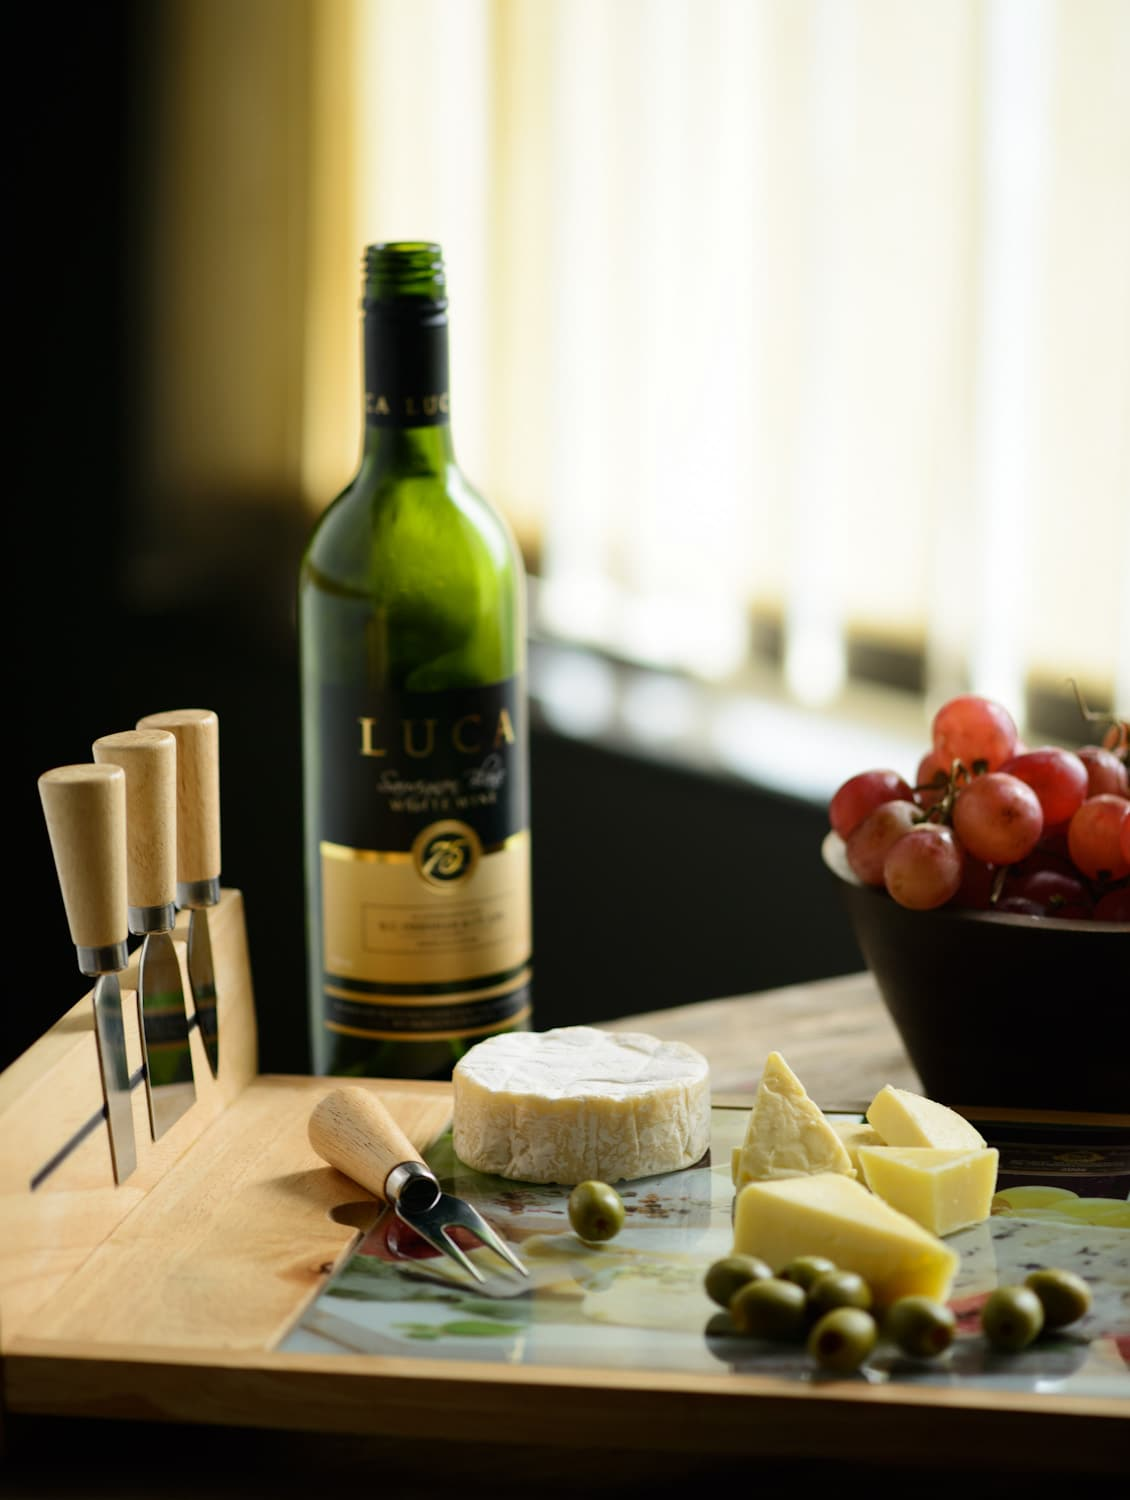 Wooden Cheese Set (4 Knives, 1 Board, 1 Printed Glass Sheet) - Master Kitchen